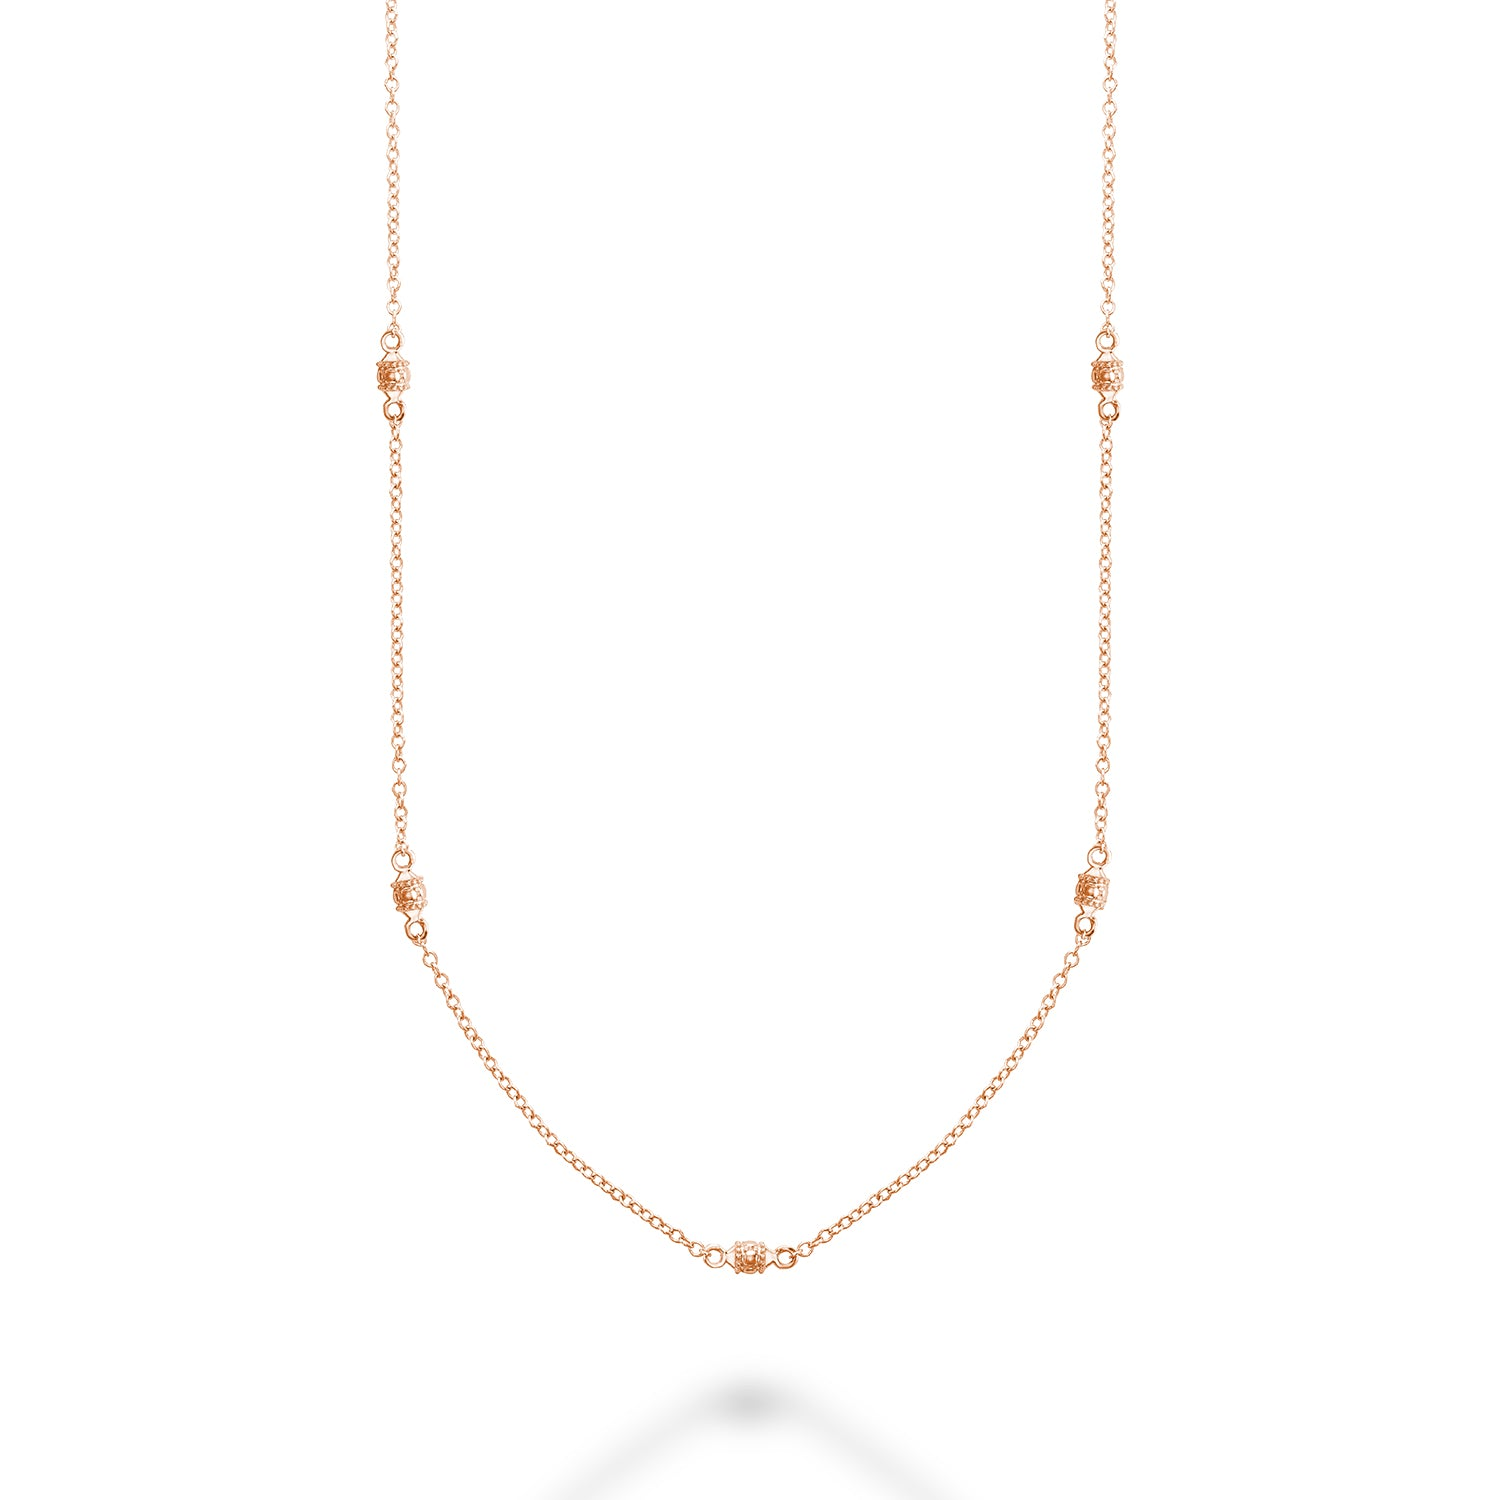 Hemsleys Collection 14K Milgrain Beads-By-The-Yard Necklace